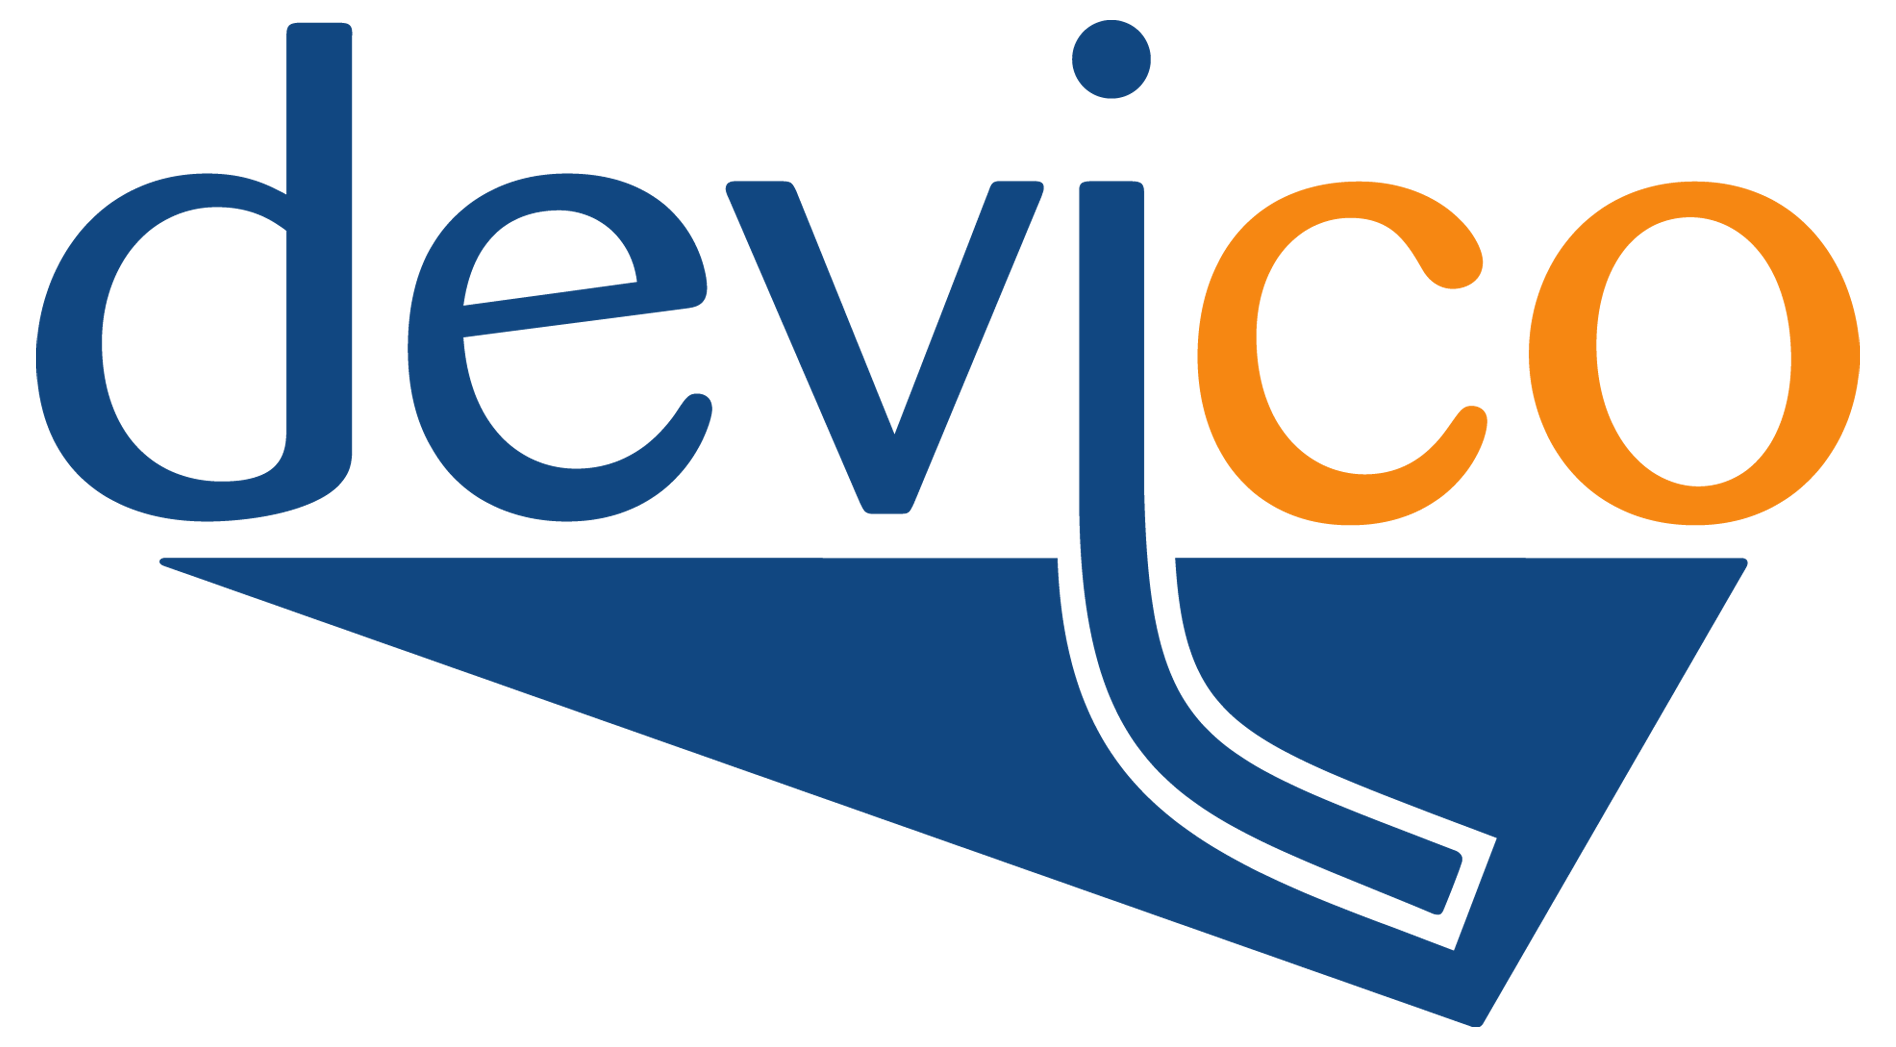 Devico_Logo.png